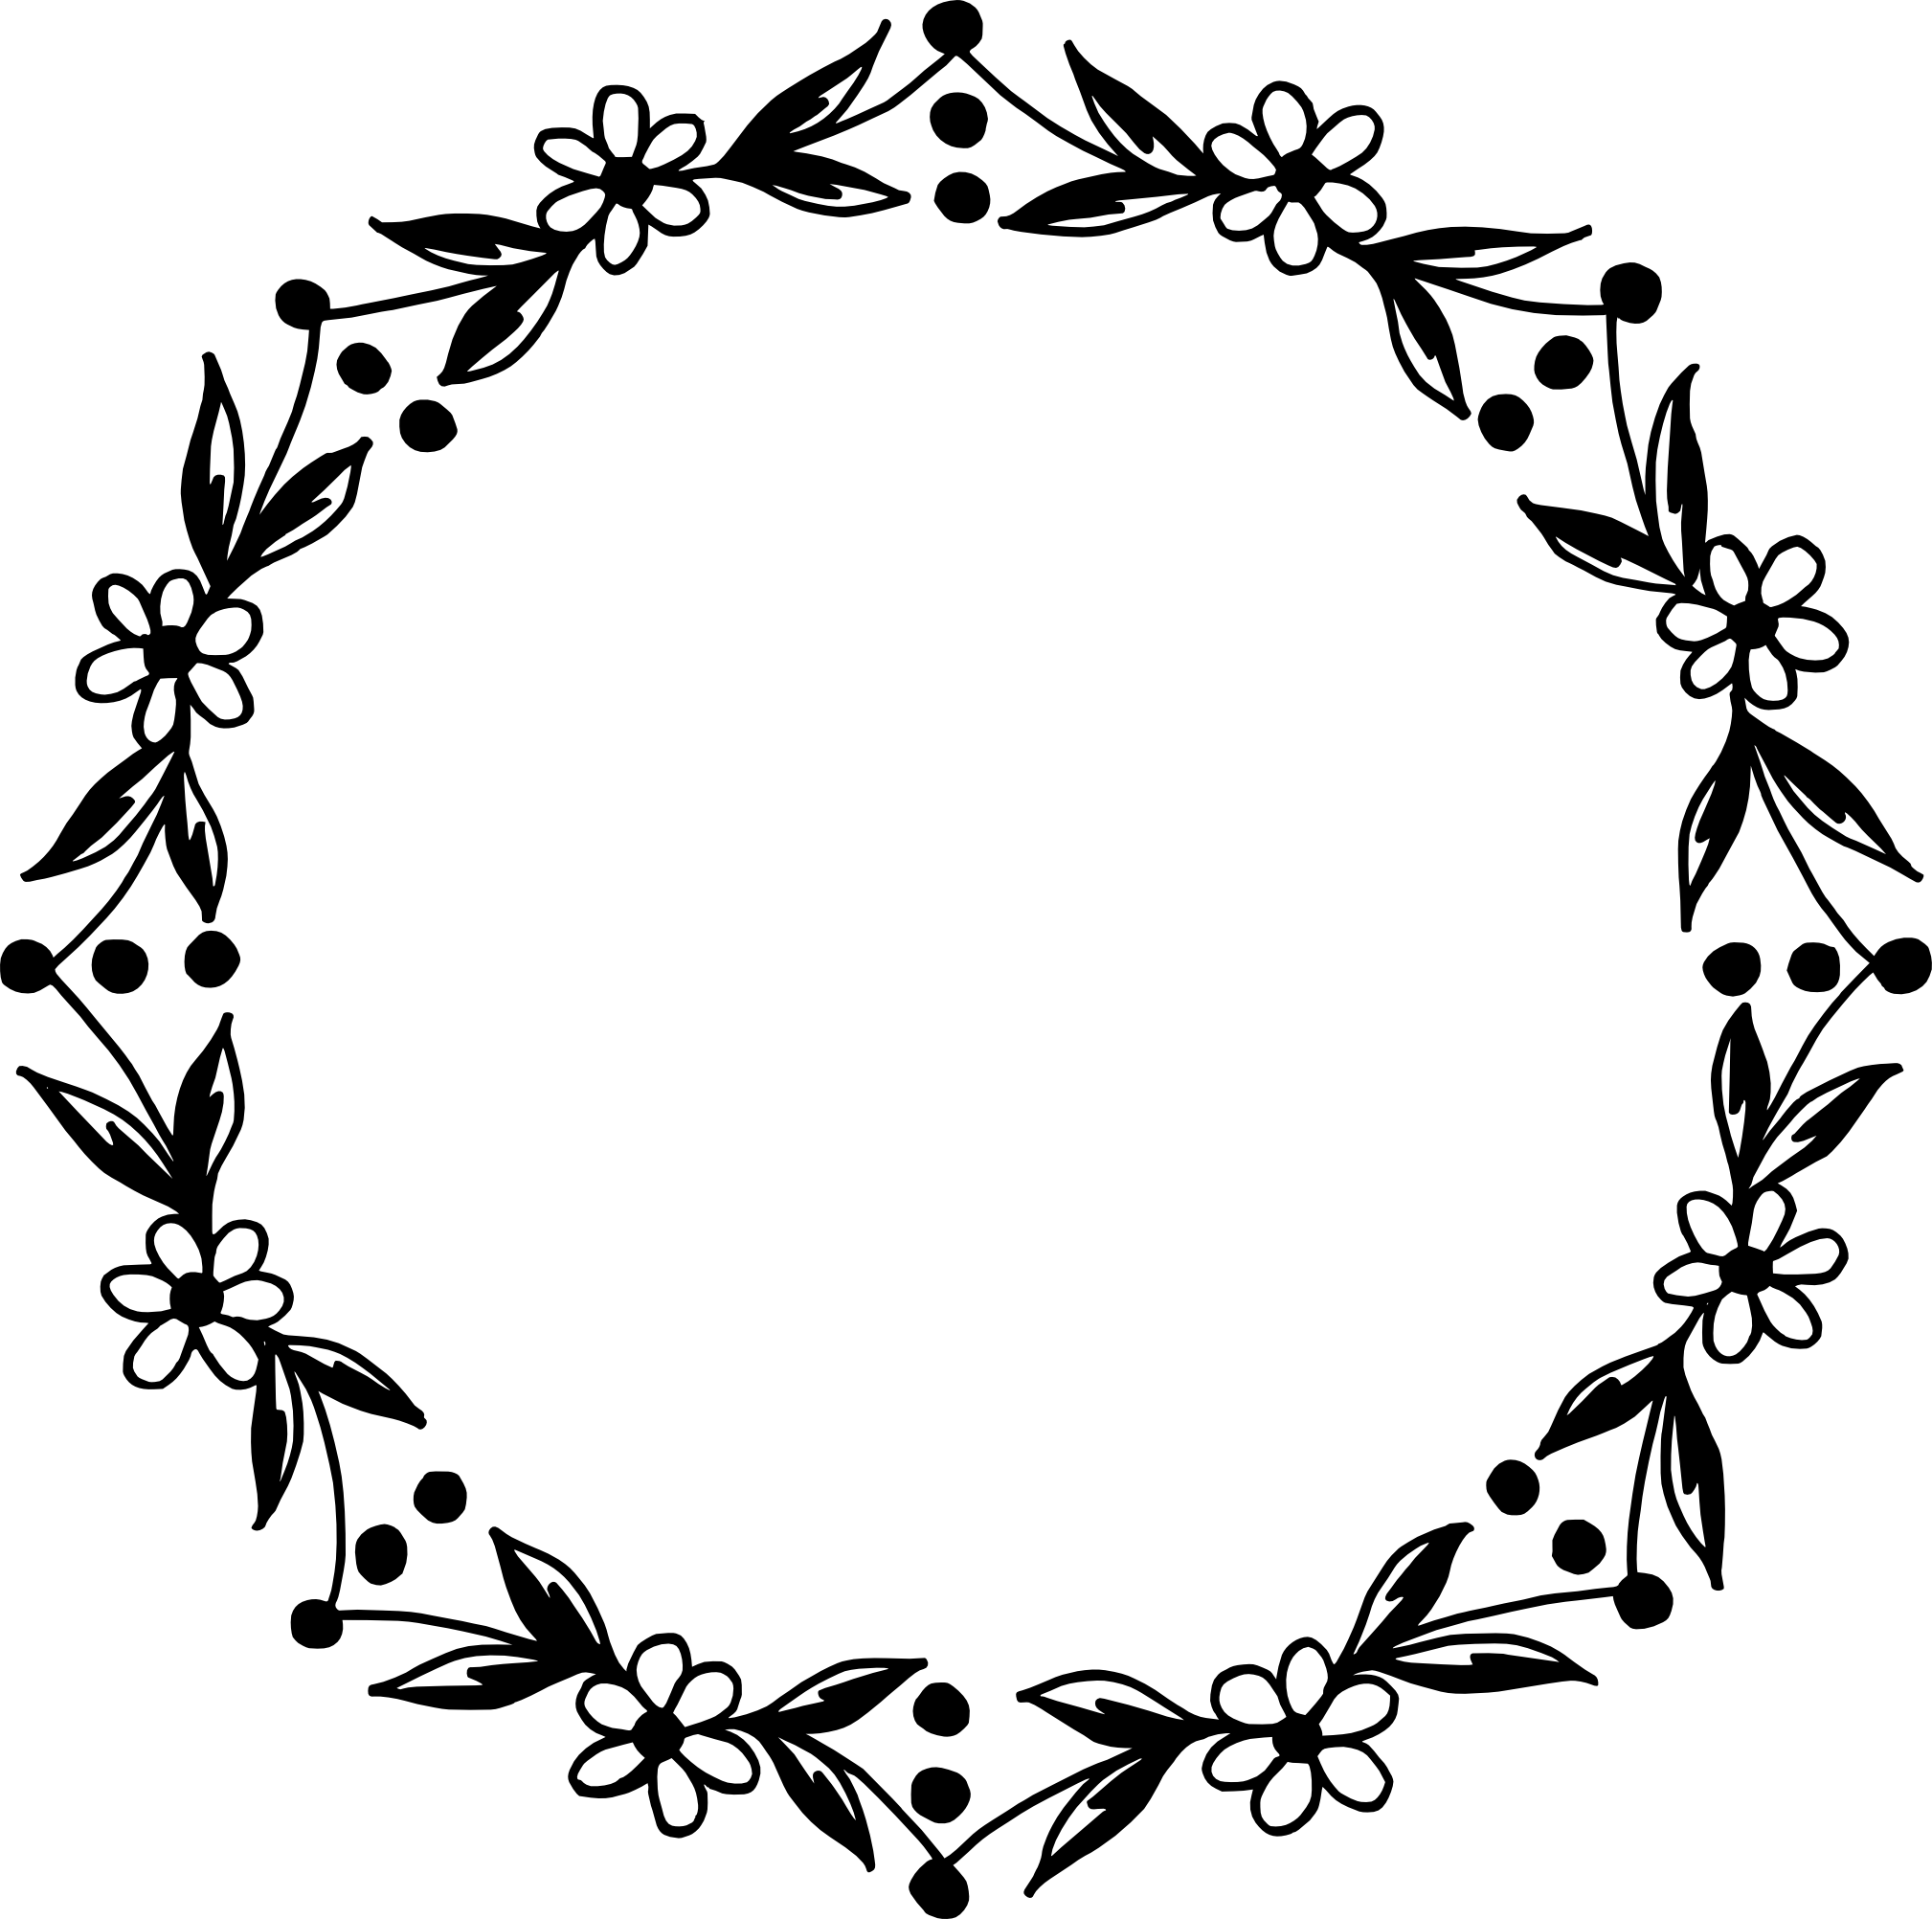 10 Circle Floral Frame Vector (PNG Transparent, SVG ...